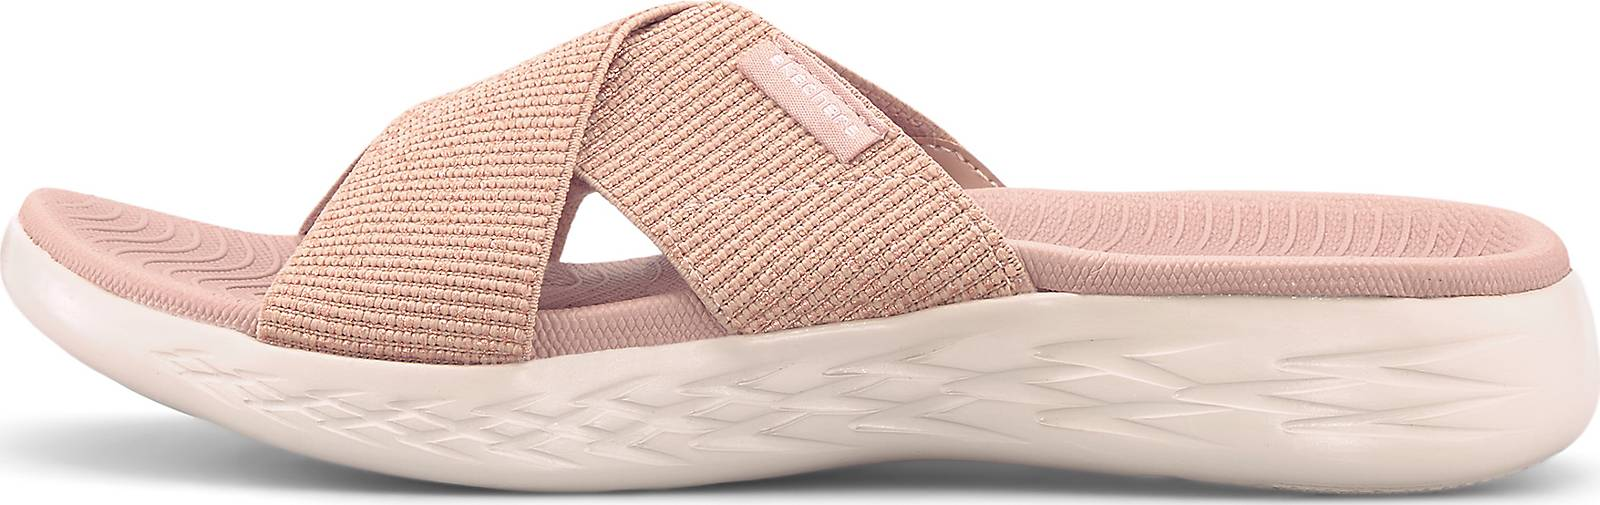 Skechers Pantolette ON THE GO 600